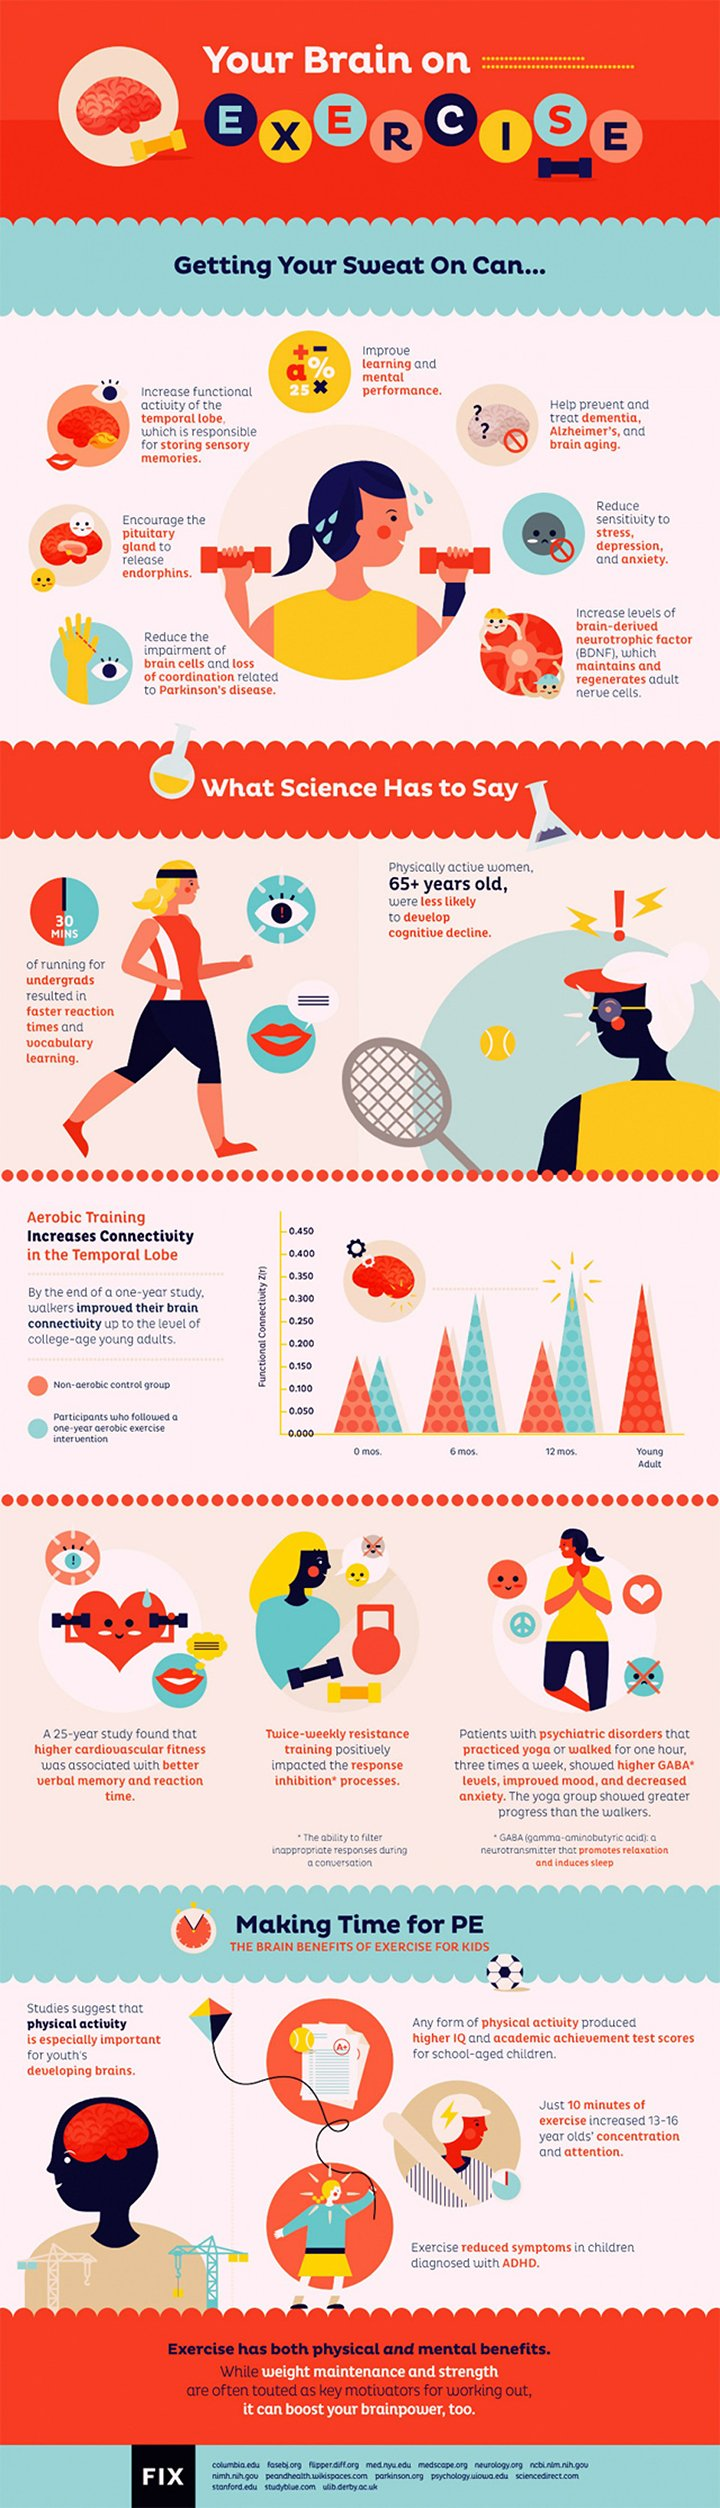 image-your-brain-on-exercise_53d851447a683_w720